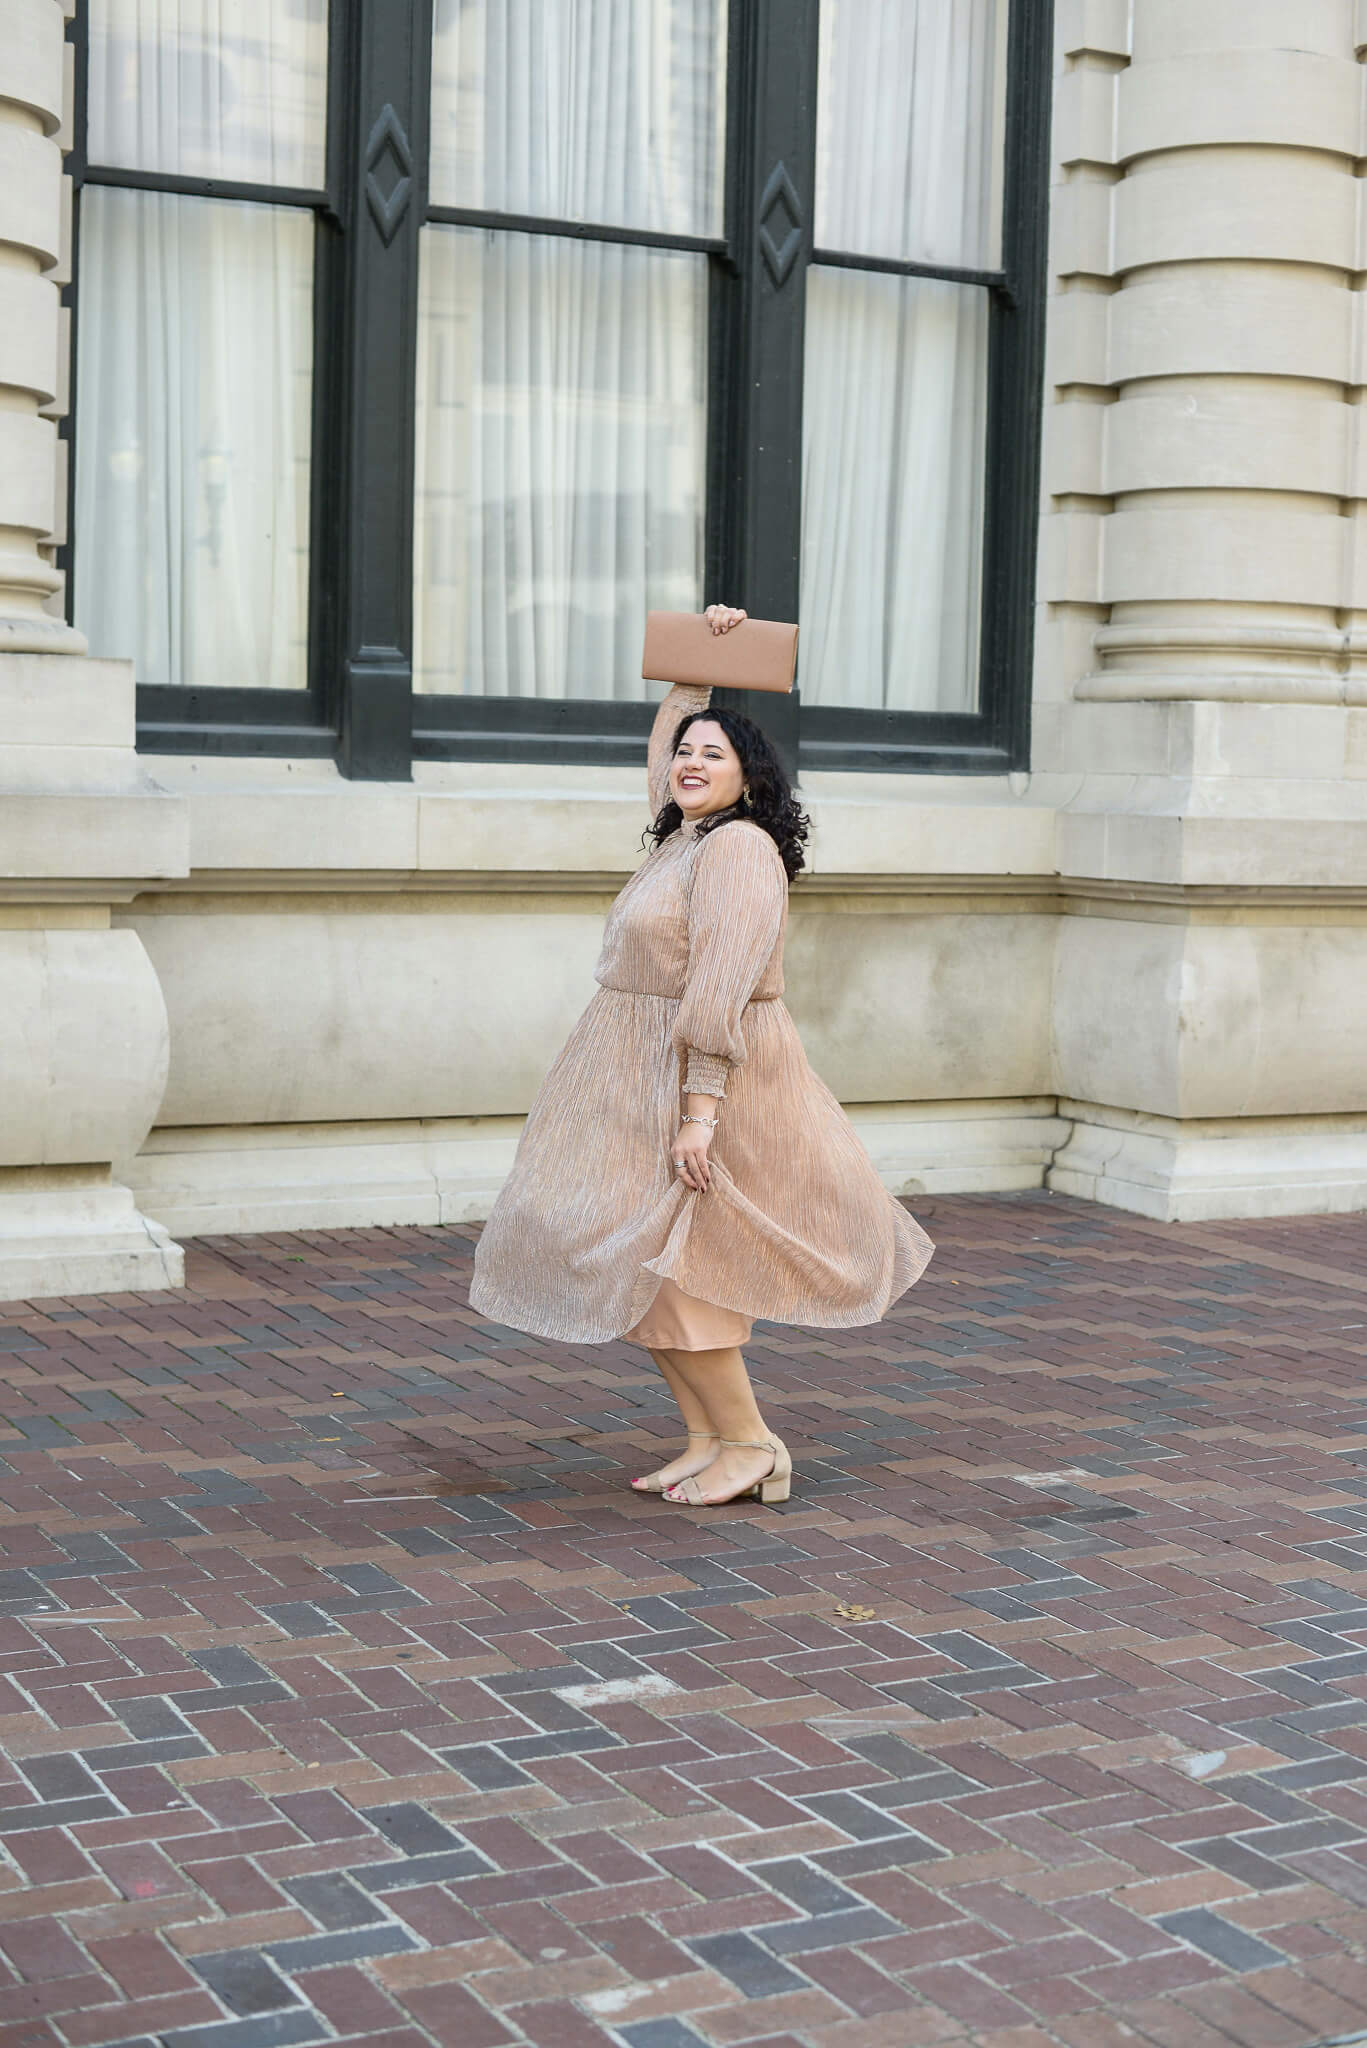 I've found the perfect plus size NYE dress at Eloquii this year. If dresses aren't your thing, I also have rounded up two pany options that can help you ring in the new year.